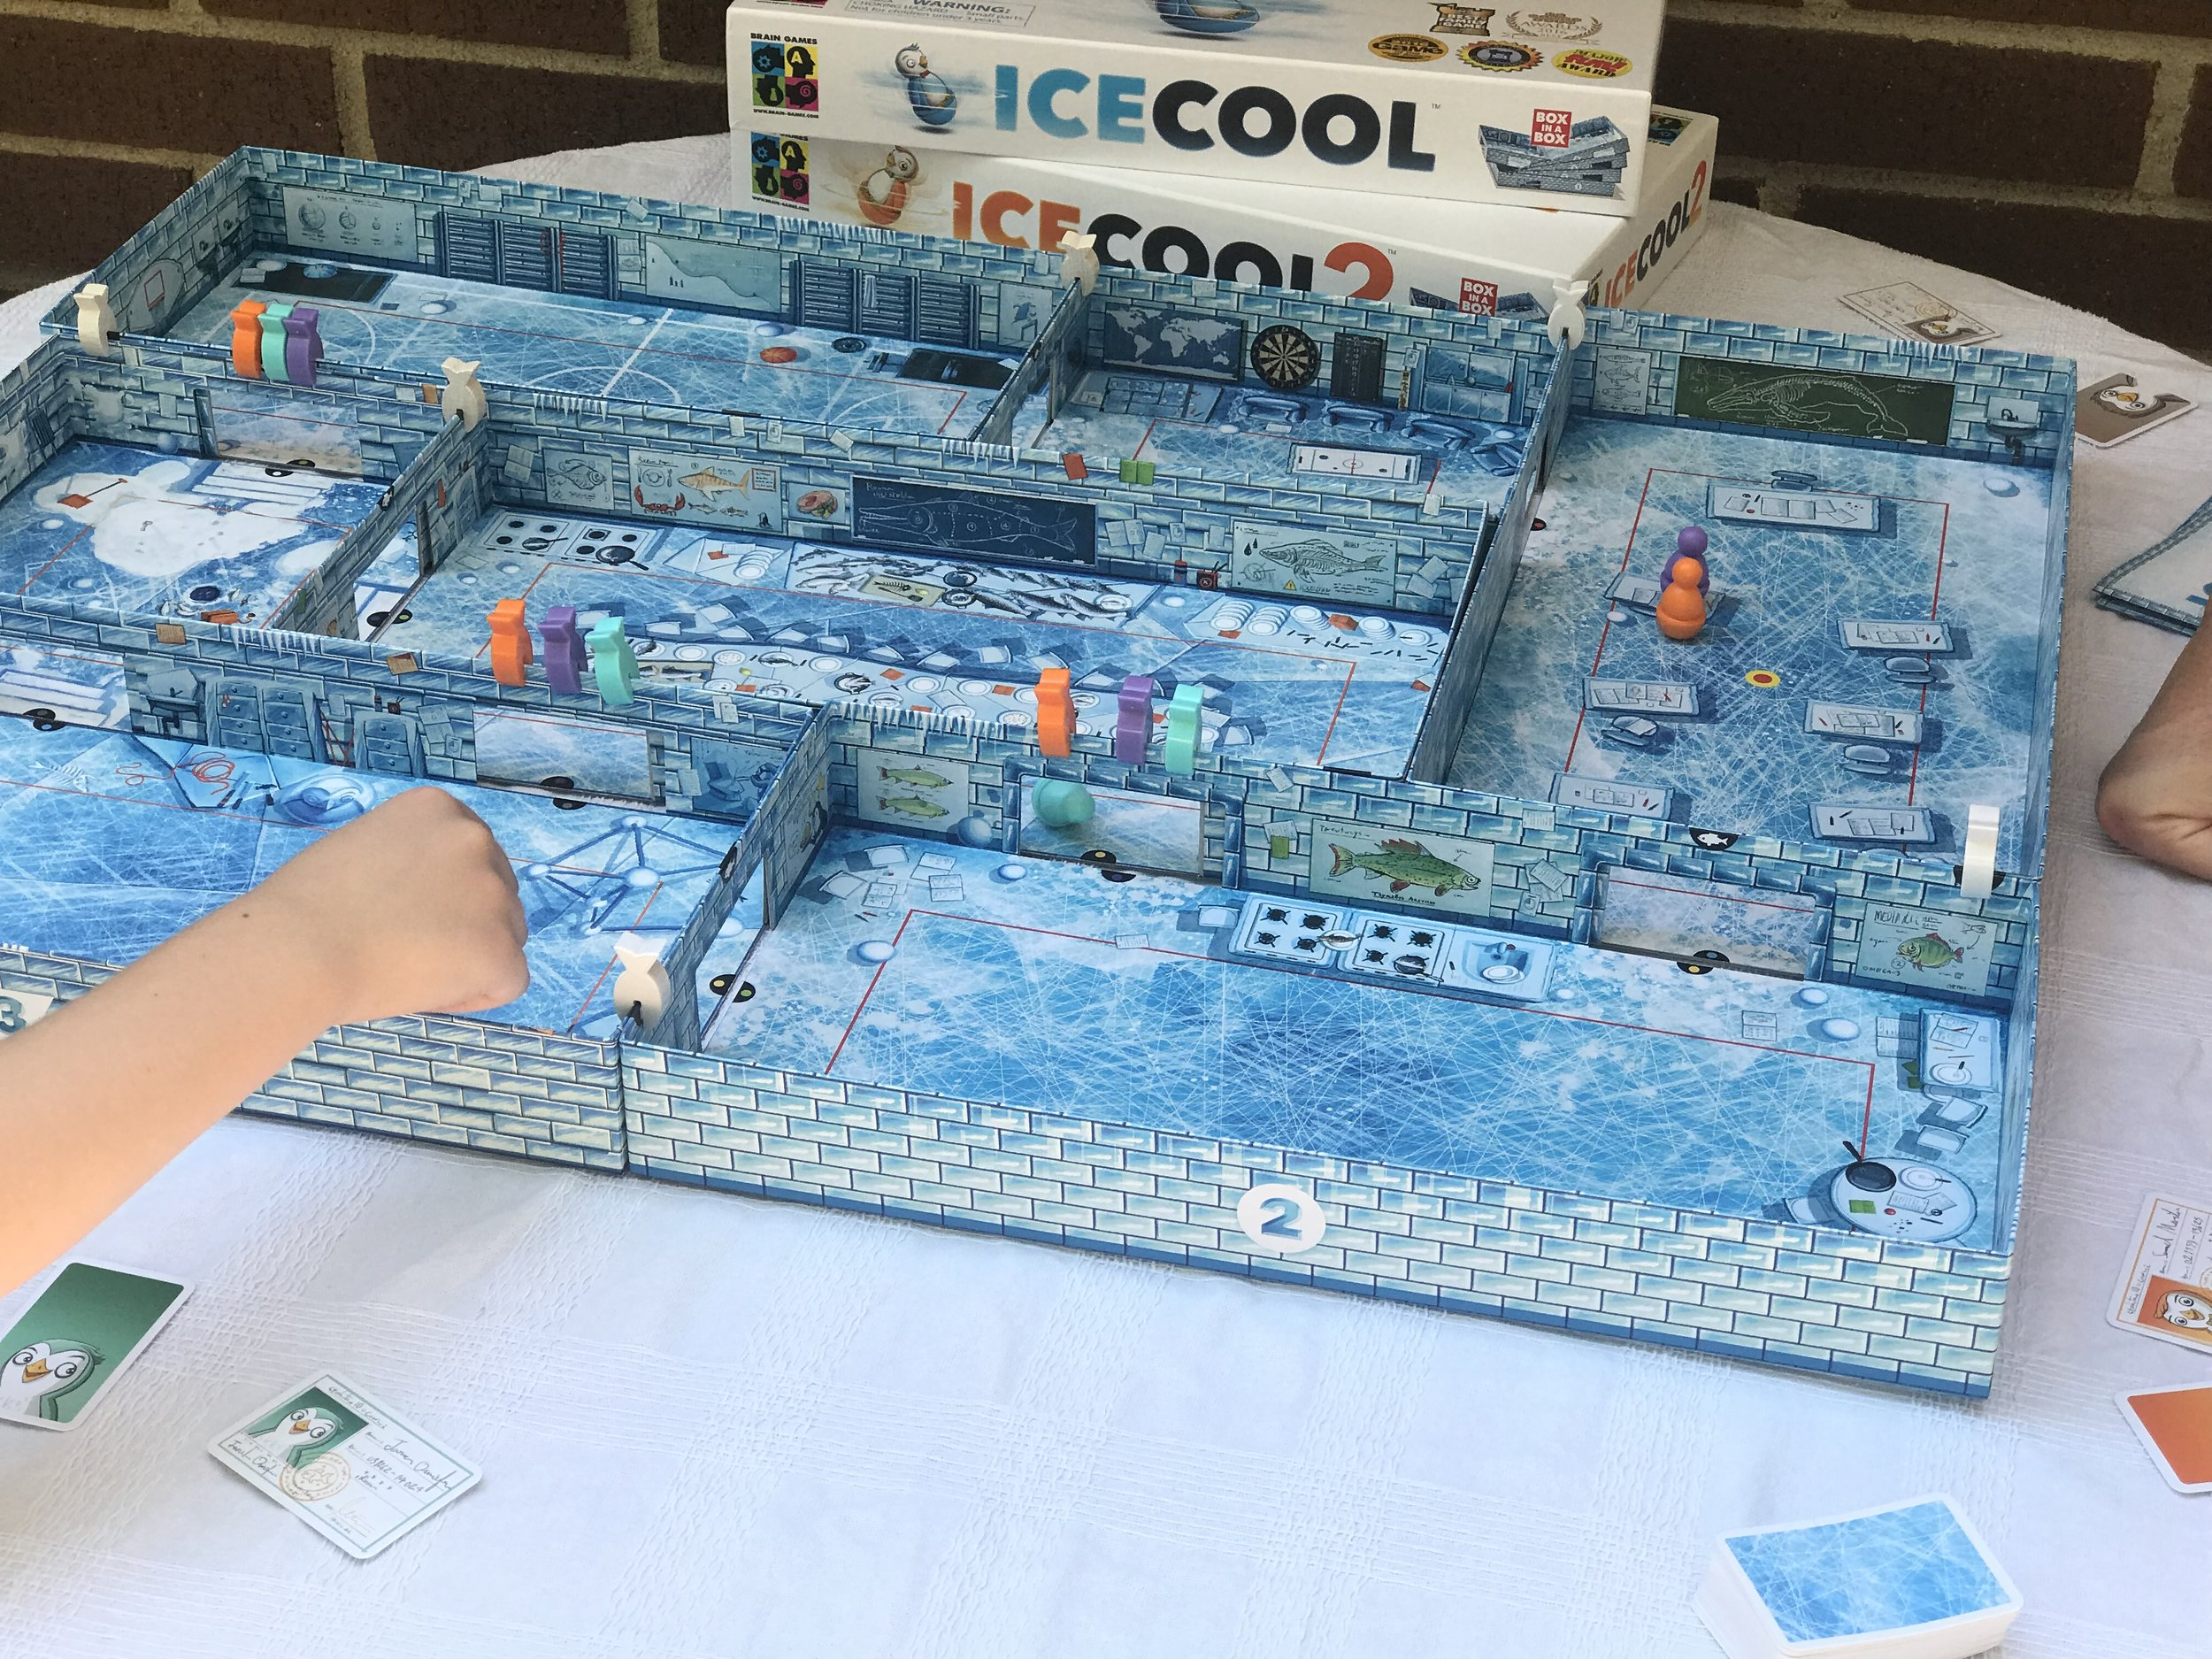 ICECOOL and ICECOOL2 family board game 8.jpg